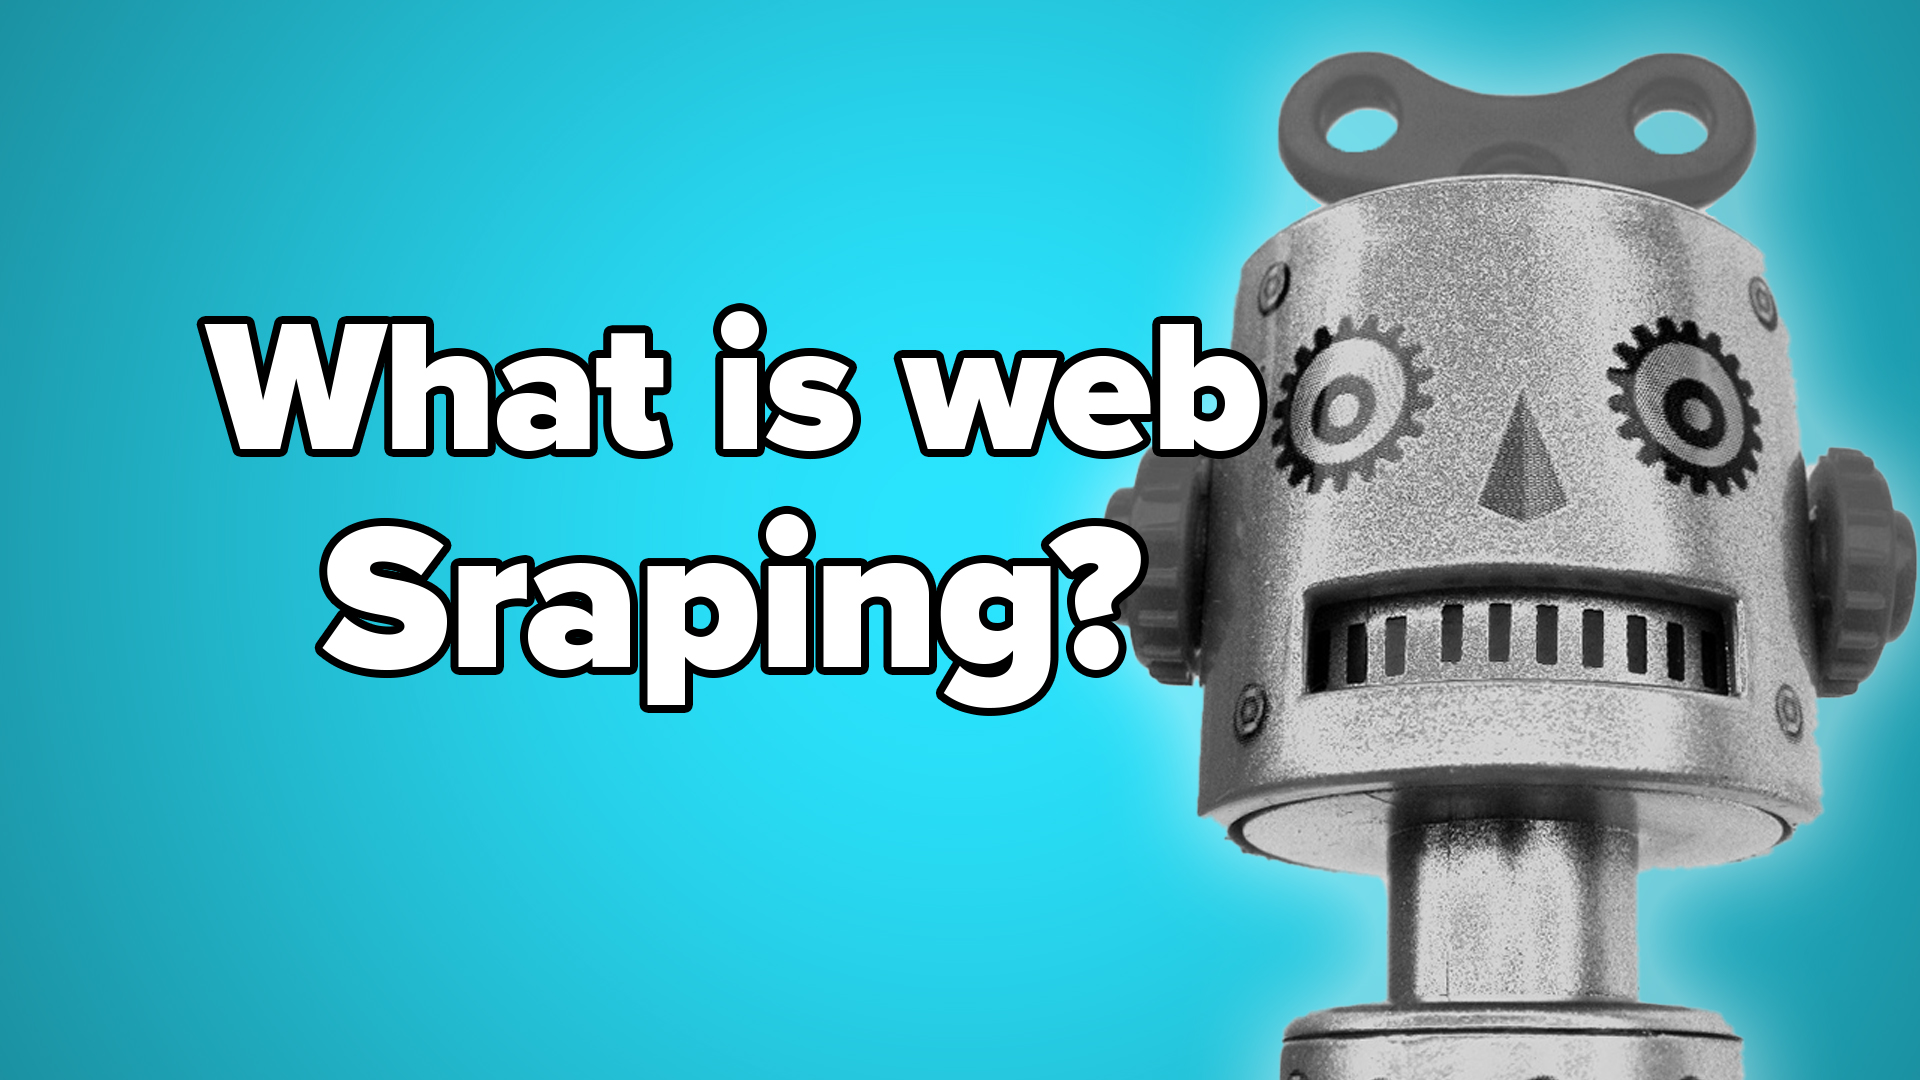 What is Web Scraping and What is it Used For?